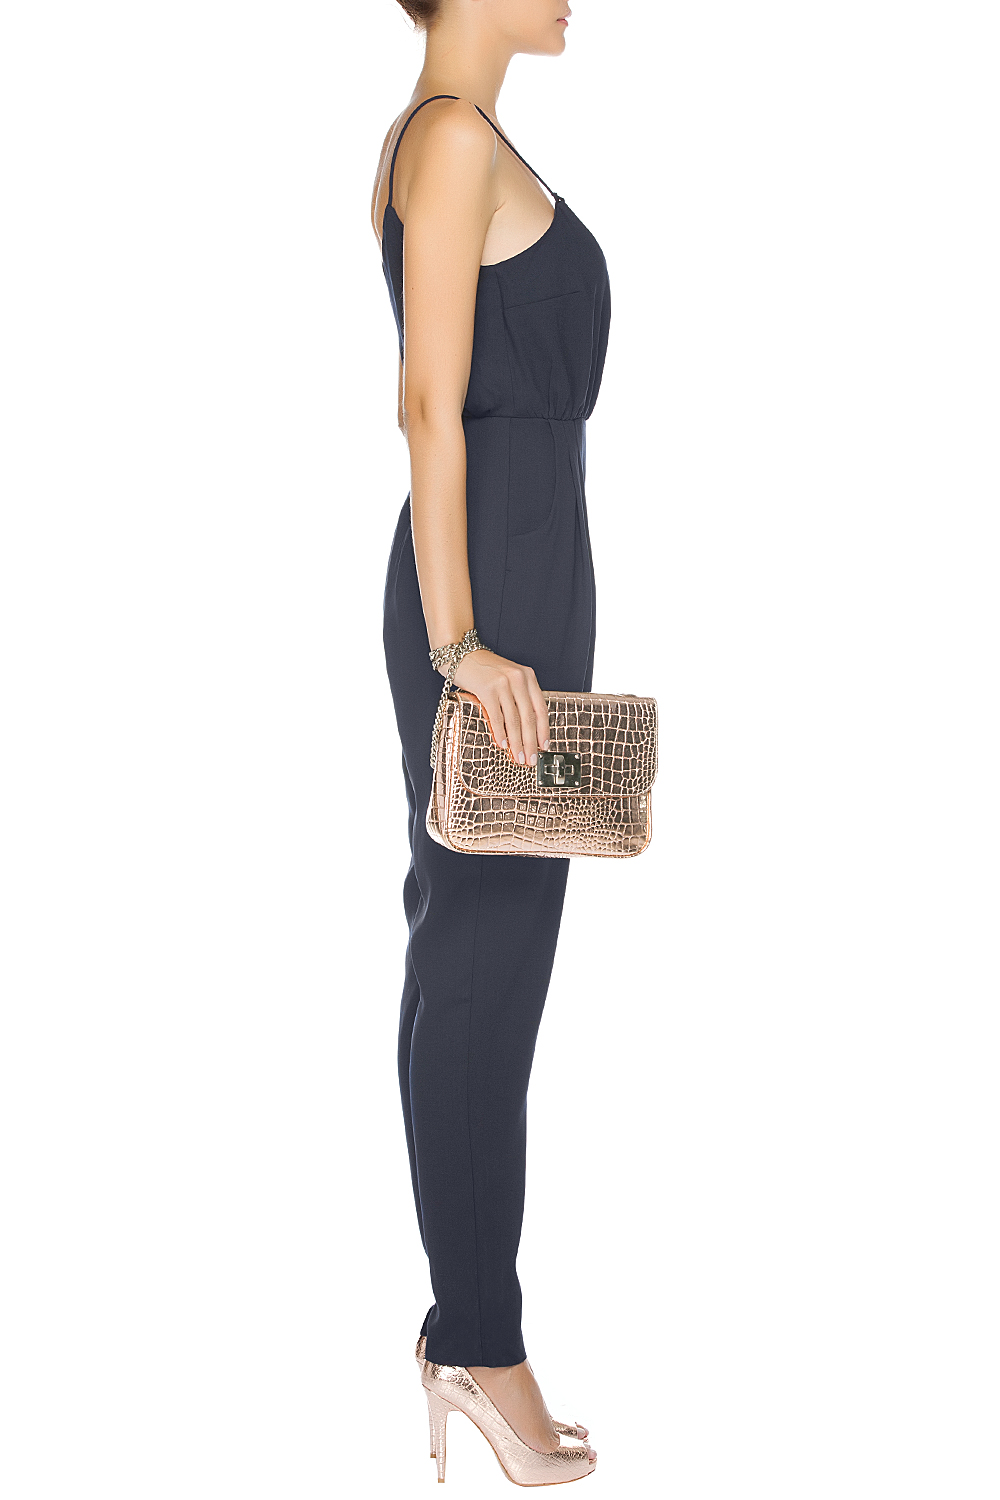 7cb293878a52 ... finders-keepers-the-someday-jumpsuit-dark-navy ...